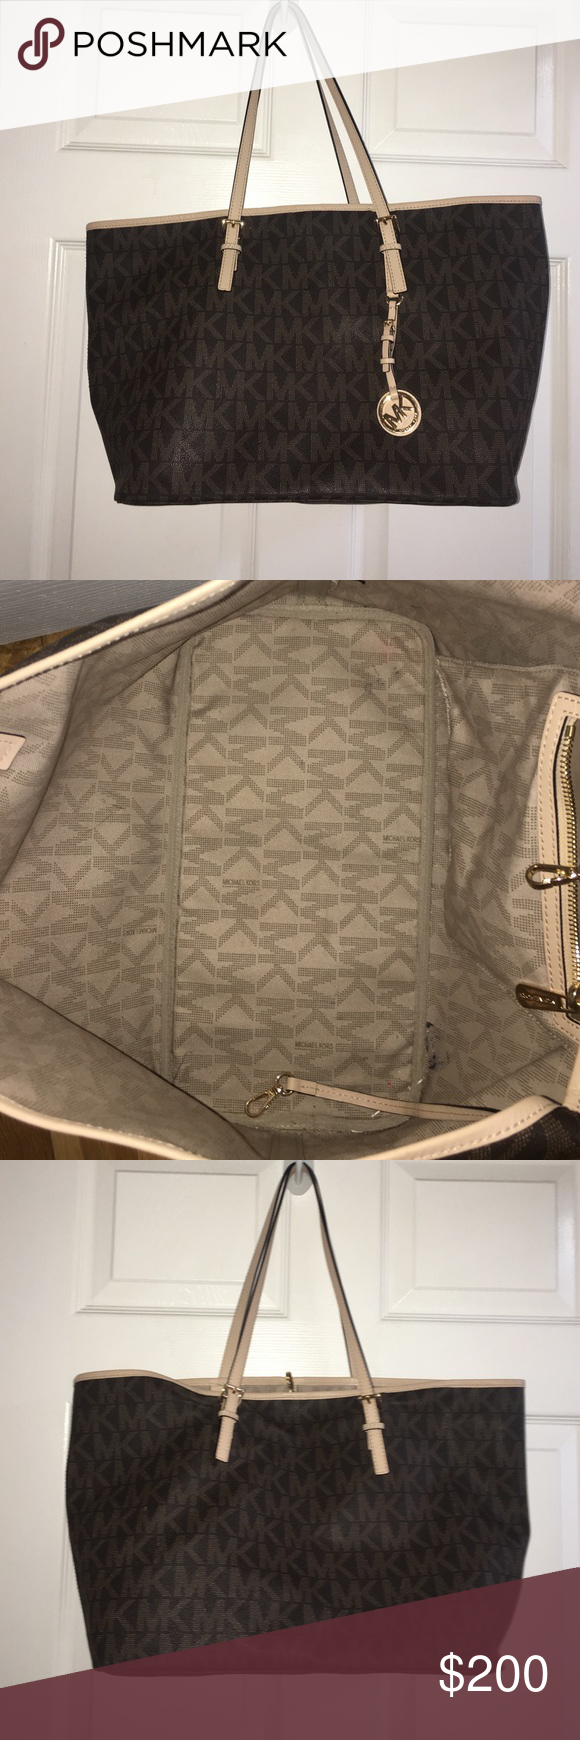 MICHAEL Michael Kors Tote Large** MICHAEL by Michael Kors Jet set Travel Tote. Tote was lightly used but no signs of damage. Perfect condition! Please take it off my hands! Price may be negotiated. Michael Kors Bags